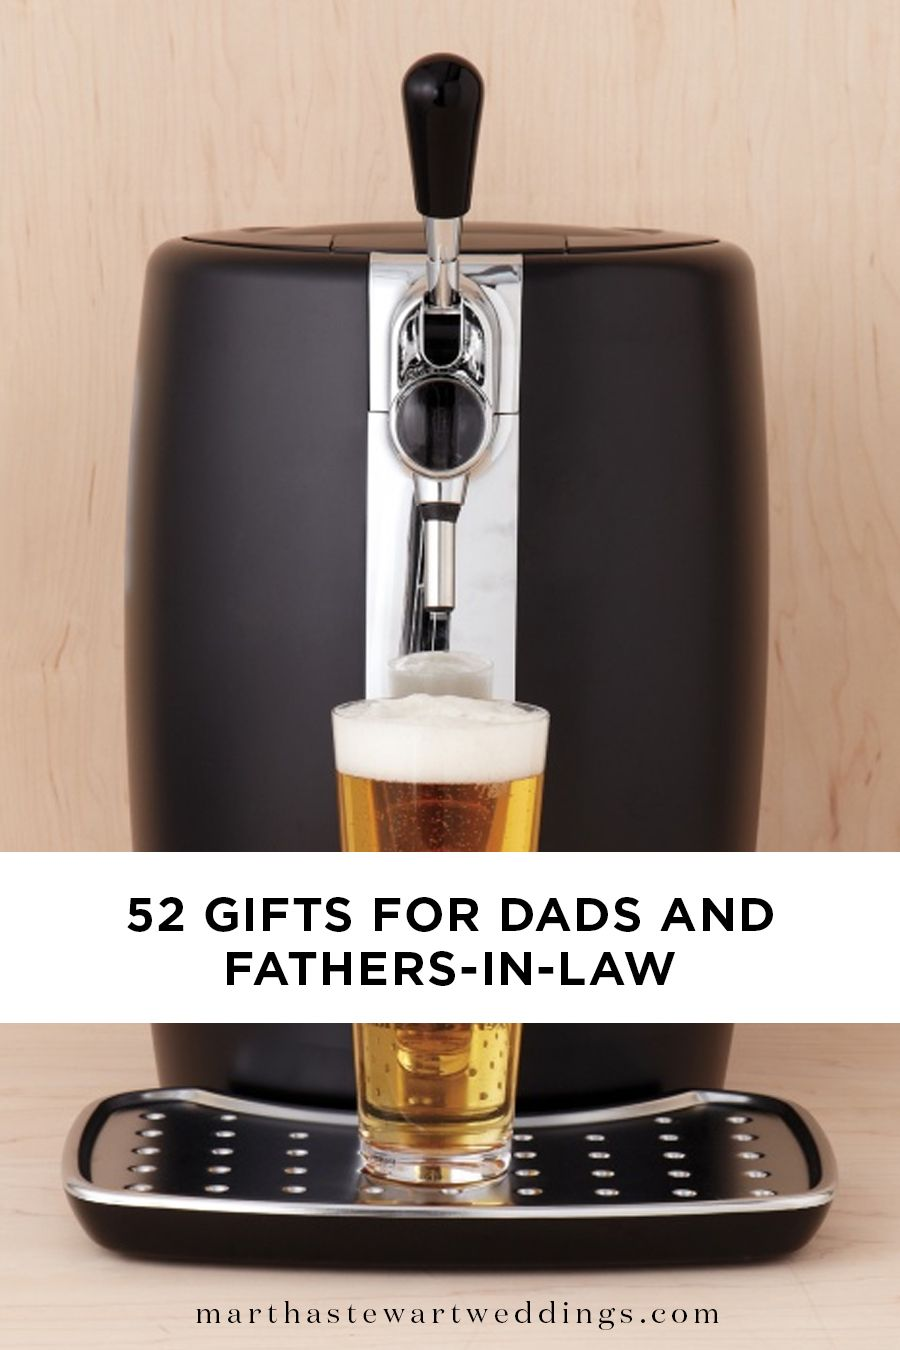 27 Gifts for Dads and Fathers-in-Law | Best dad gifts ...